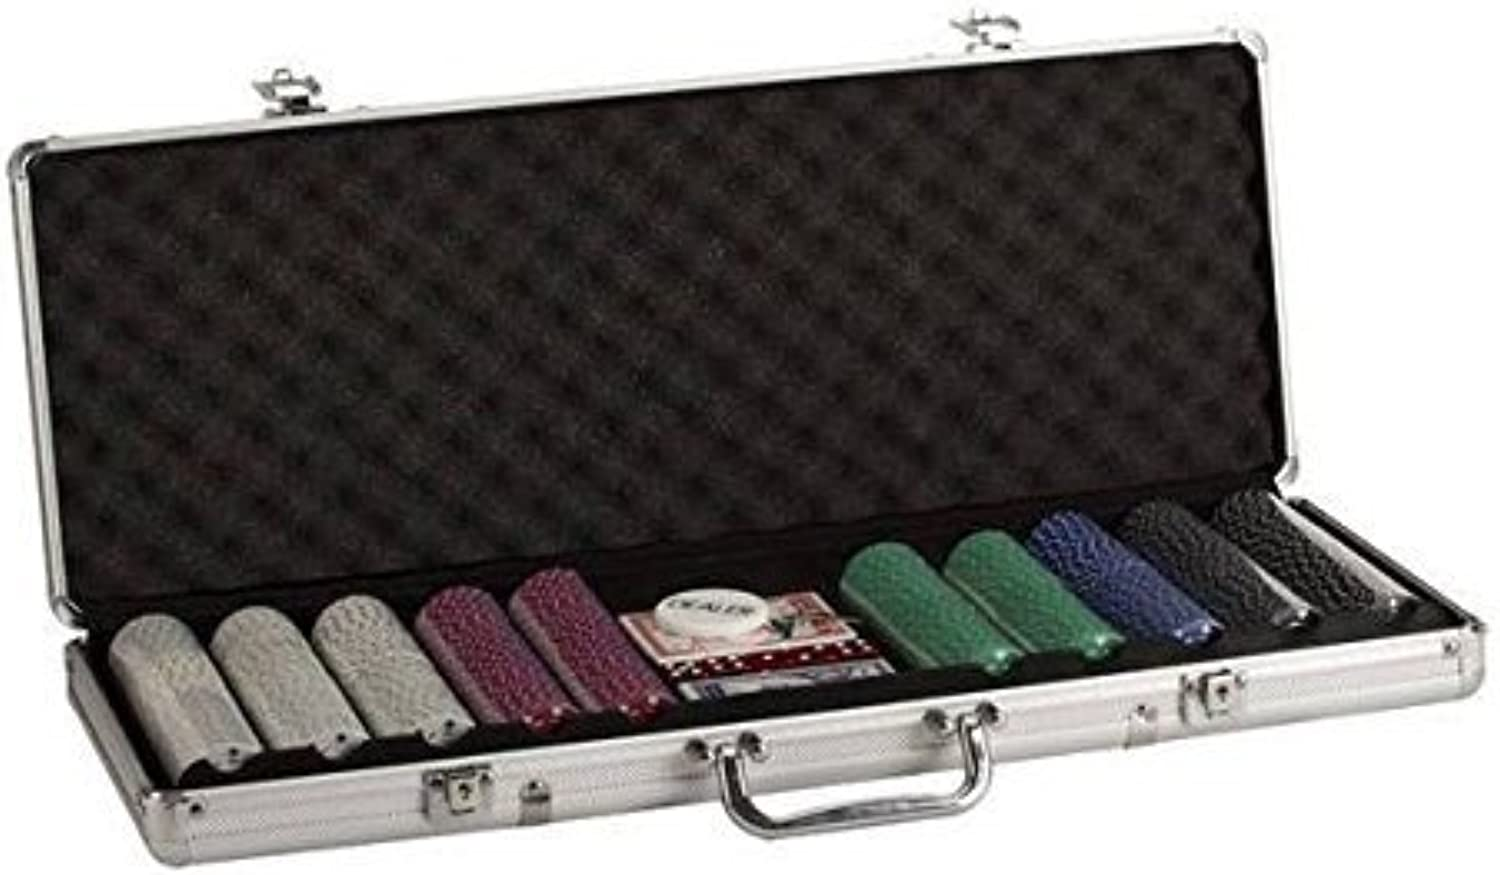 Poker Set with Aluminum Case (500 Piece), 11.5g by CHH